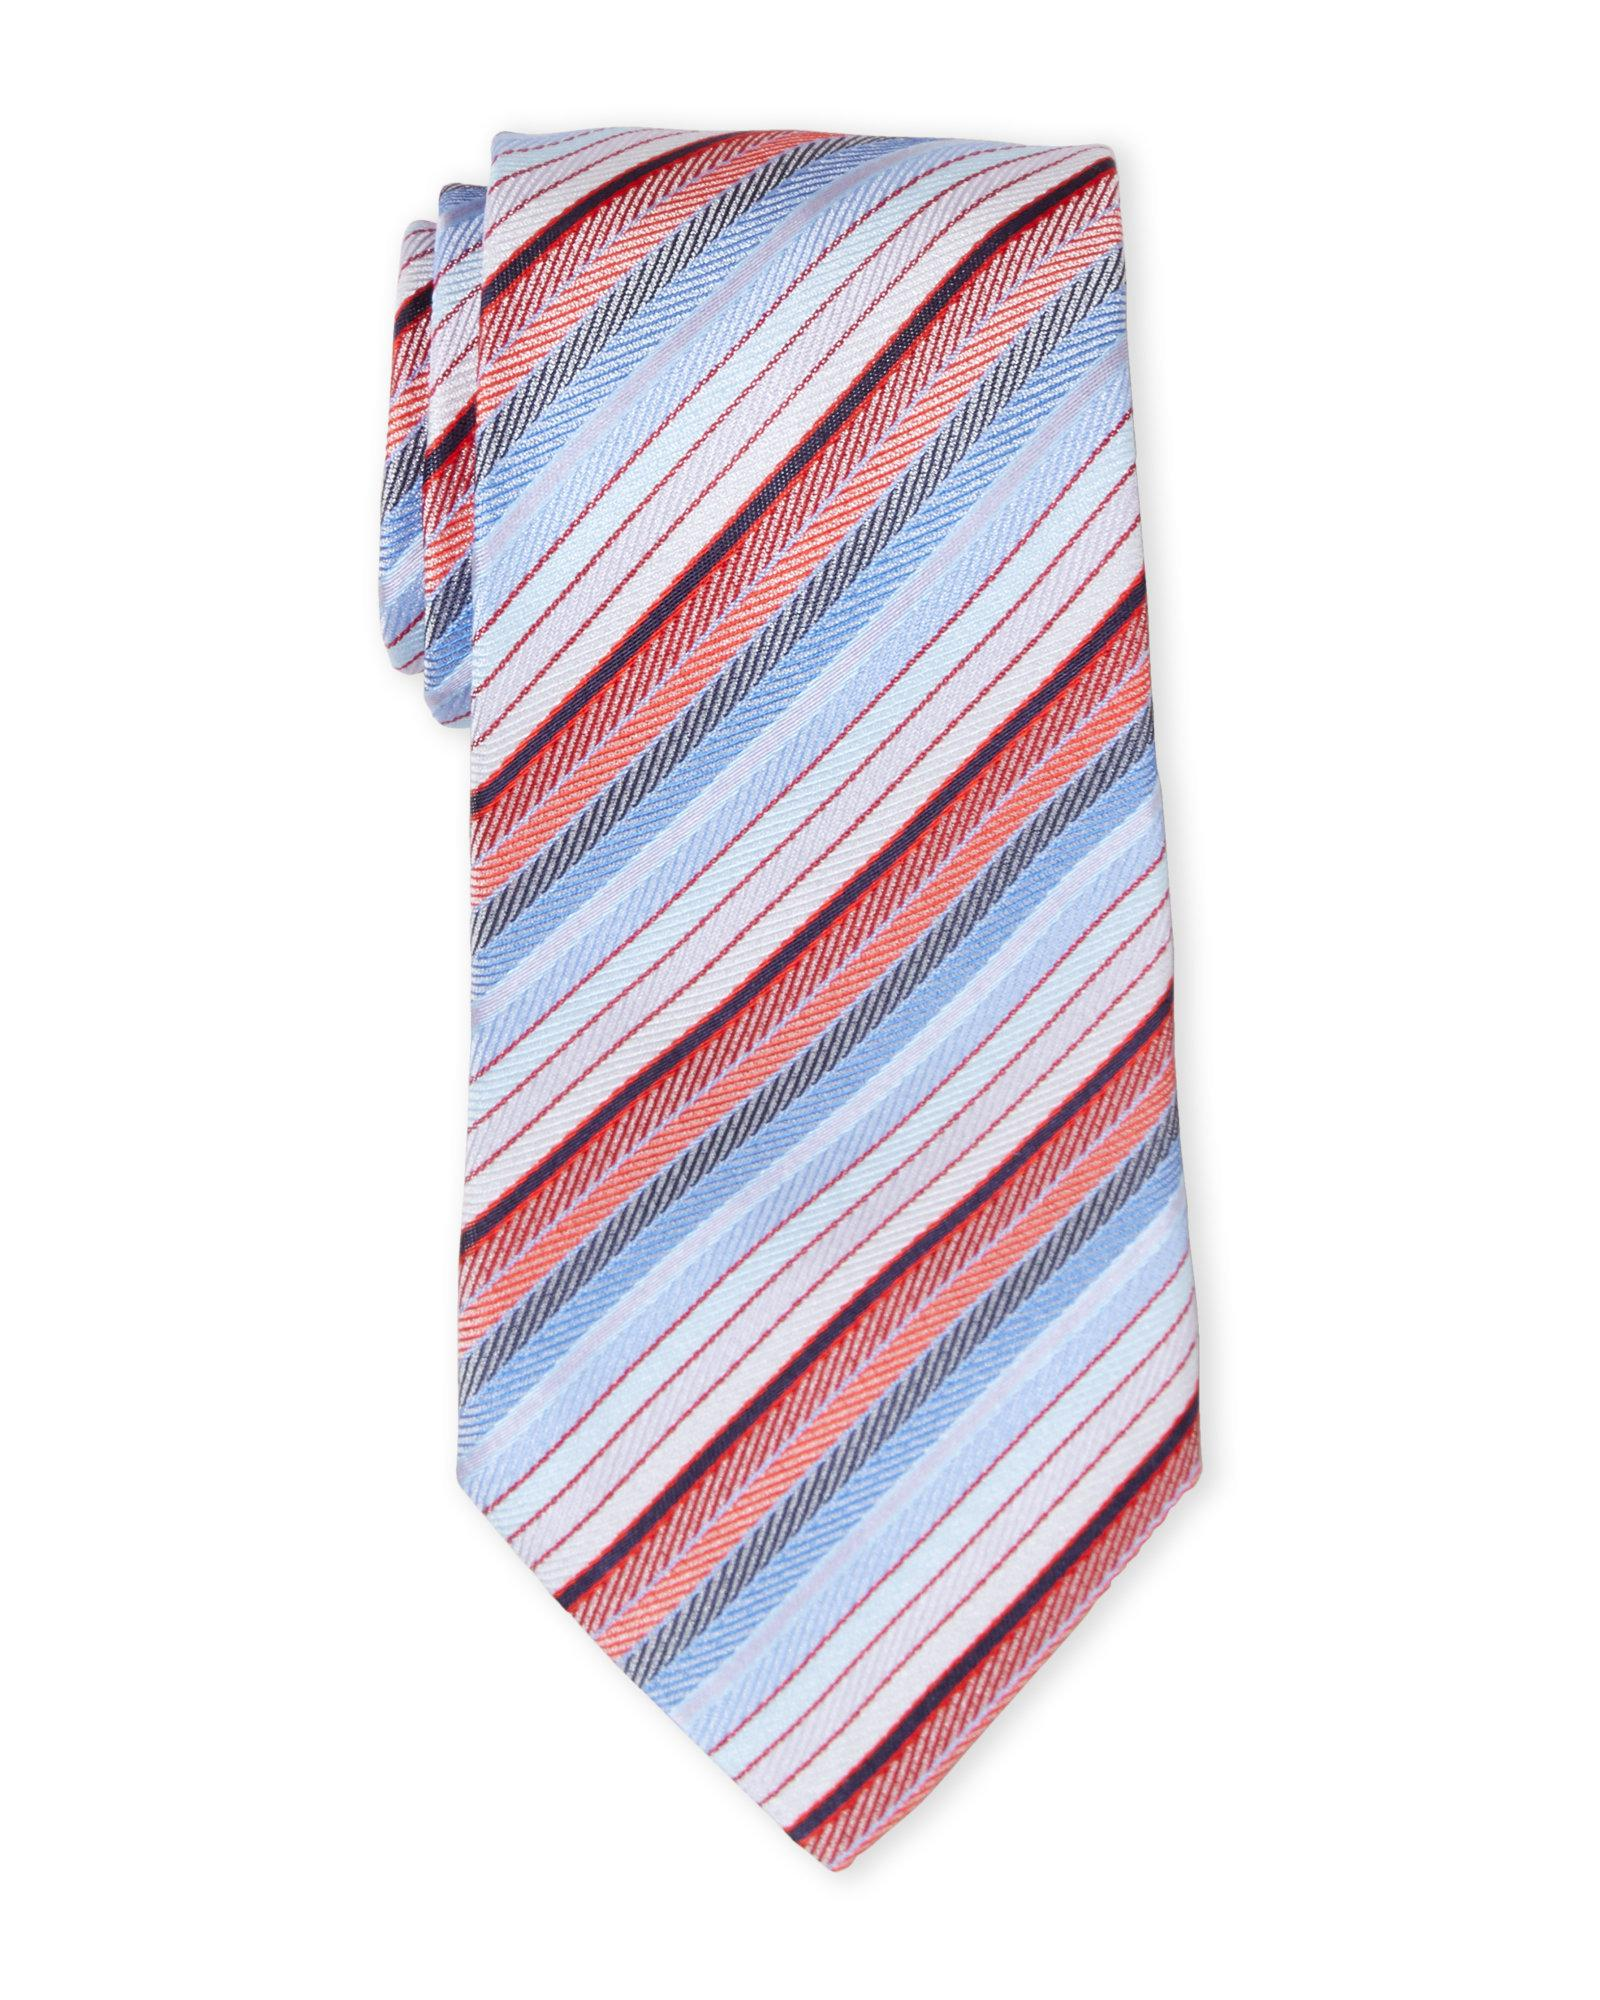 Lyst - Missoni Red   Blue Stripe Herringbone Silk Tie in Blue for Men 327c7a704